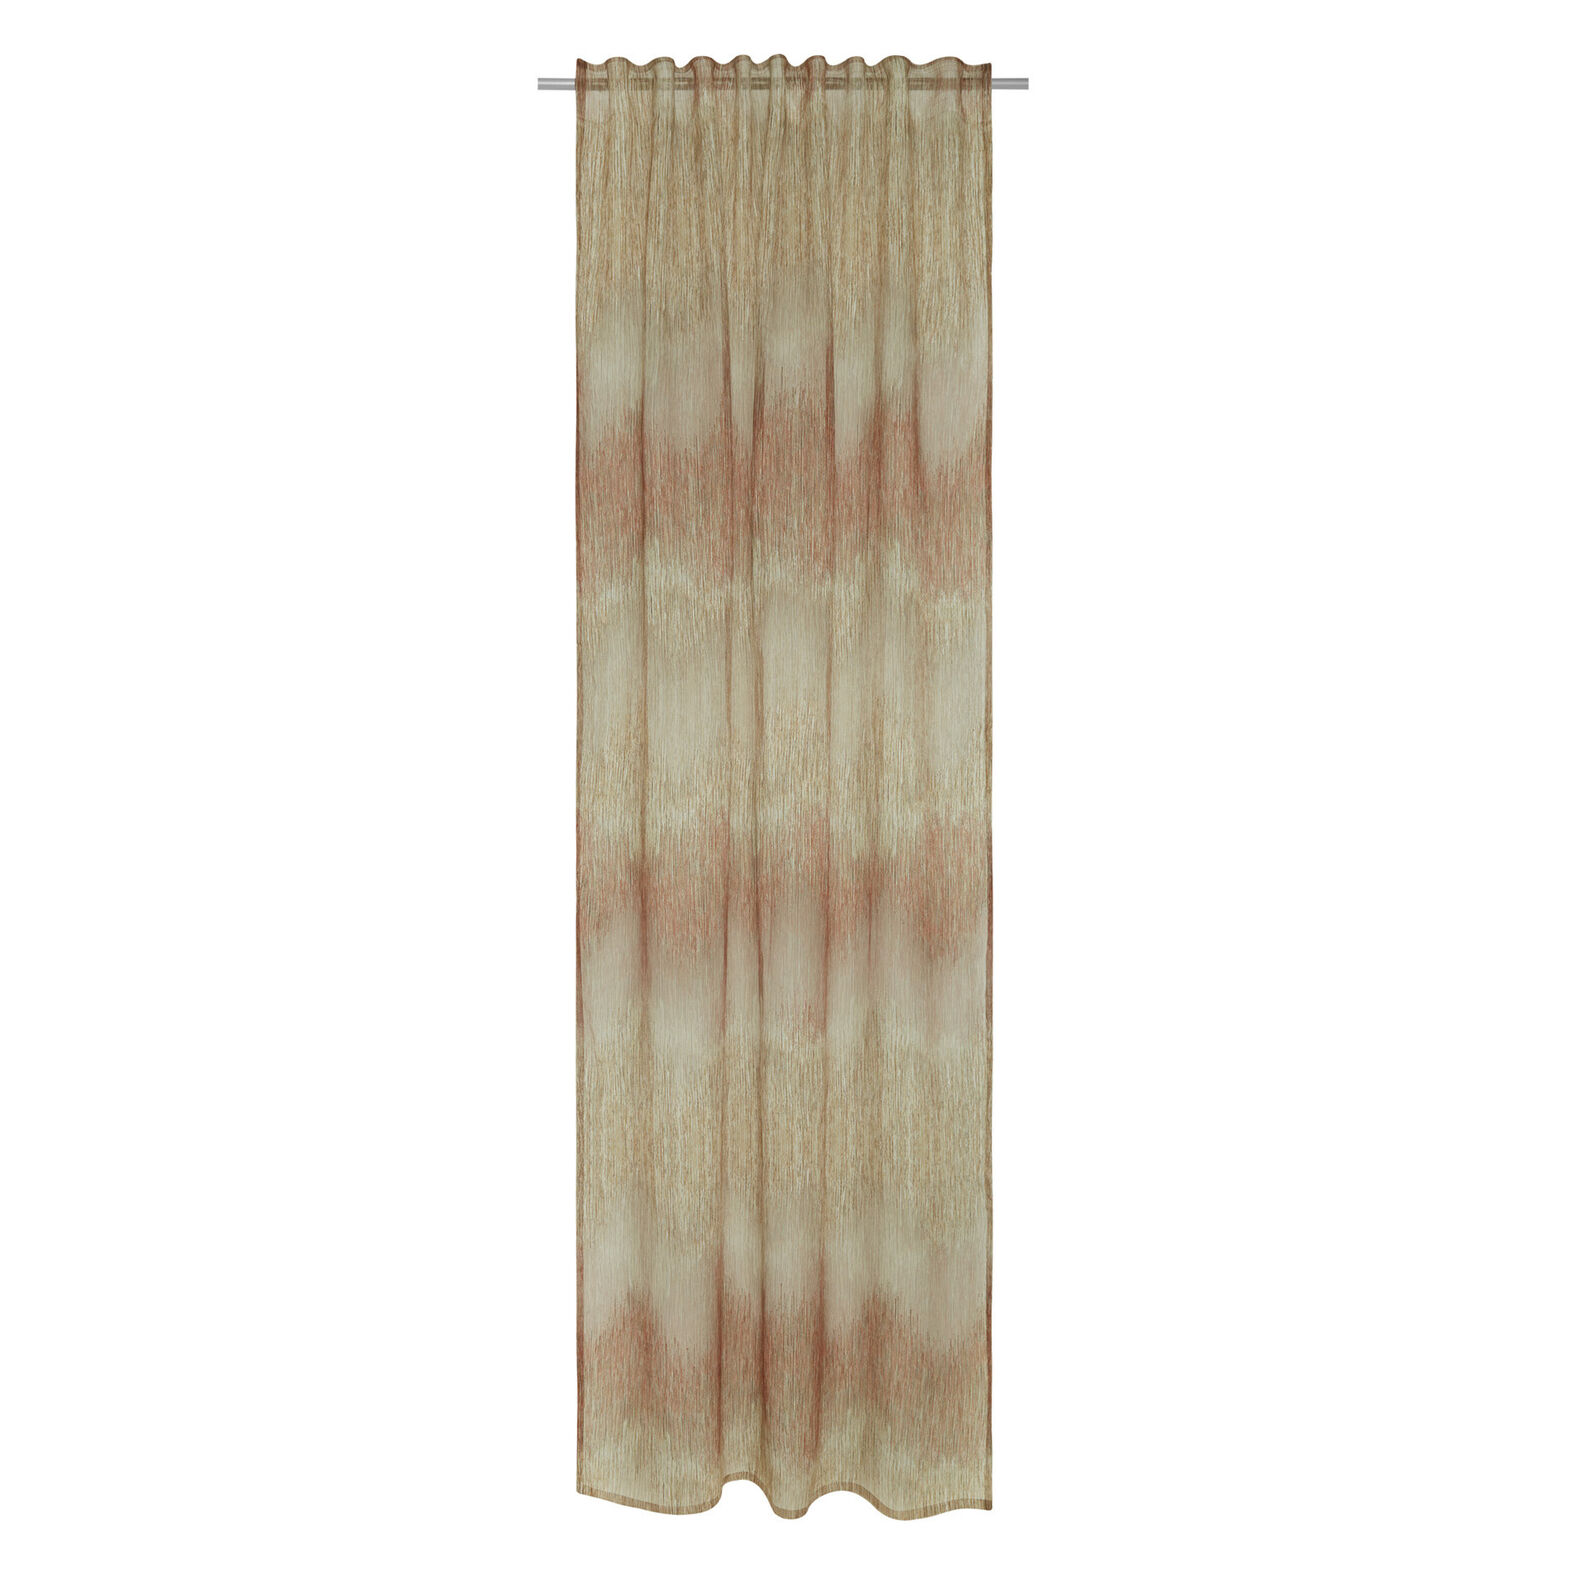 Curtain with hidden loops and devoré design